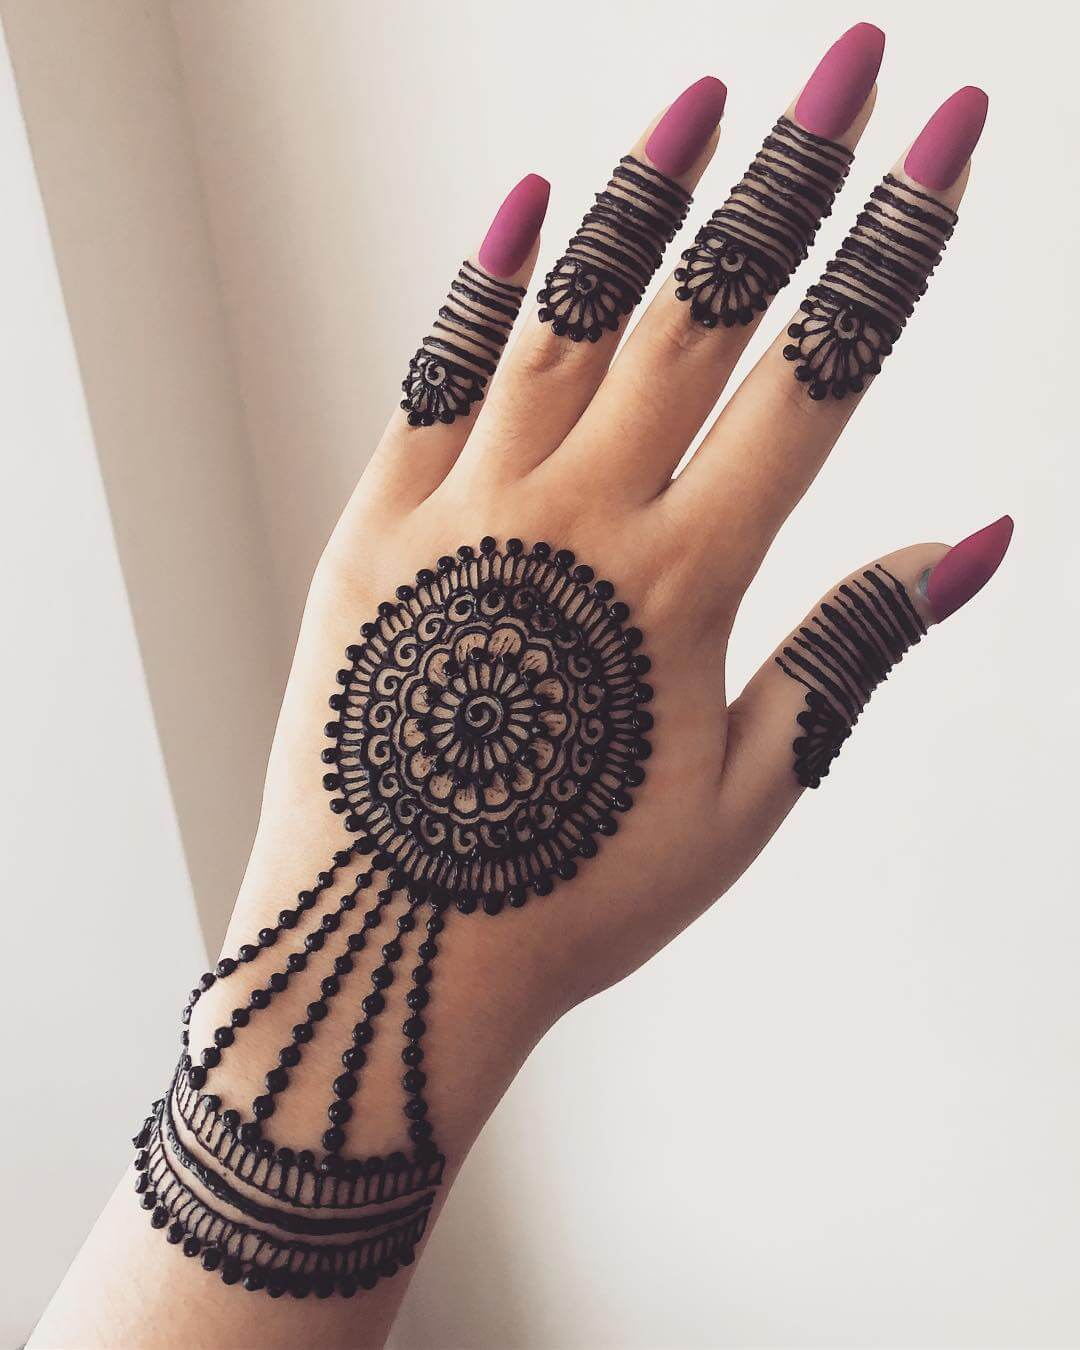 Beads and mandala mehndi design for back hand